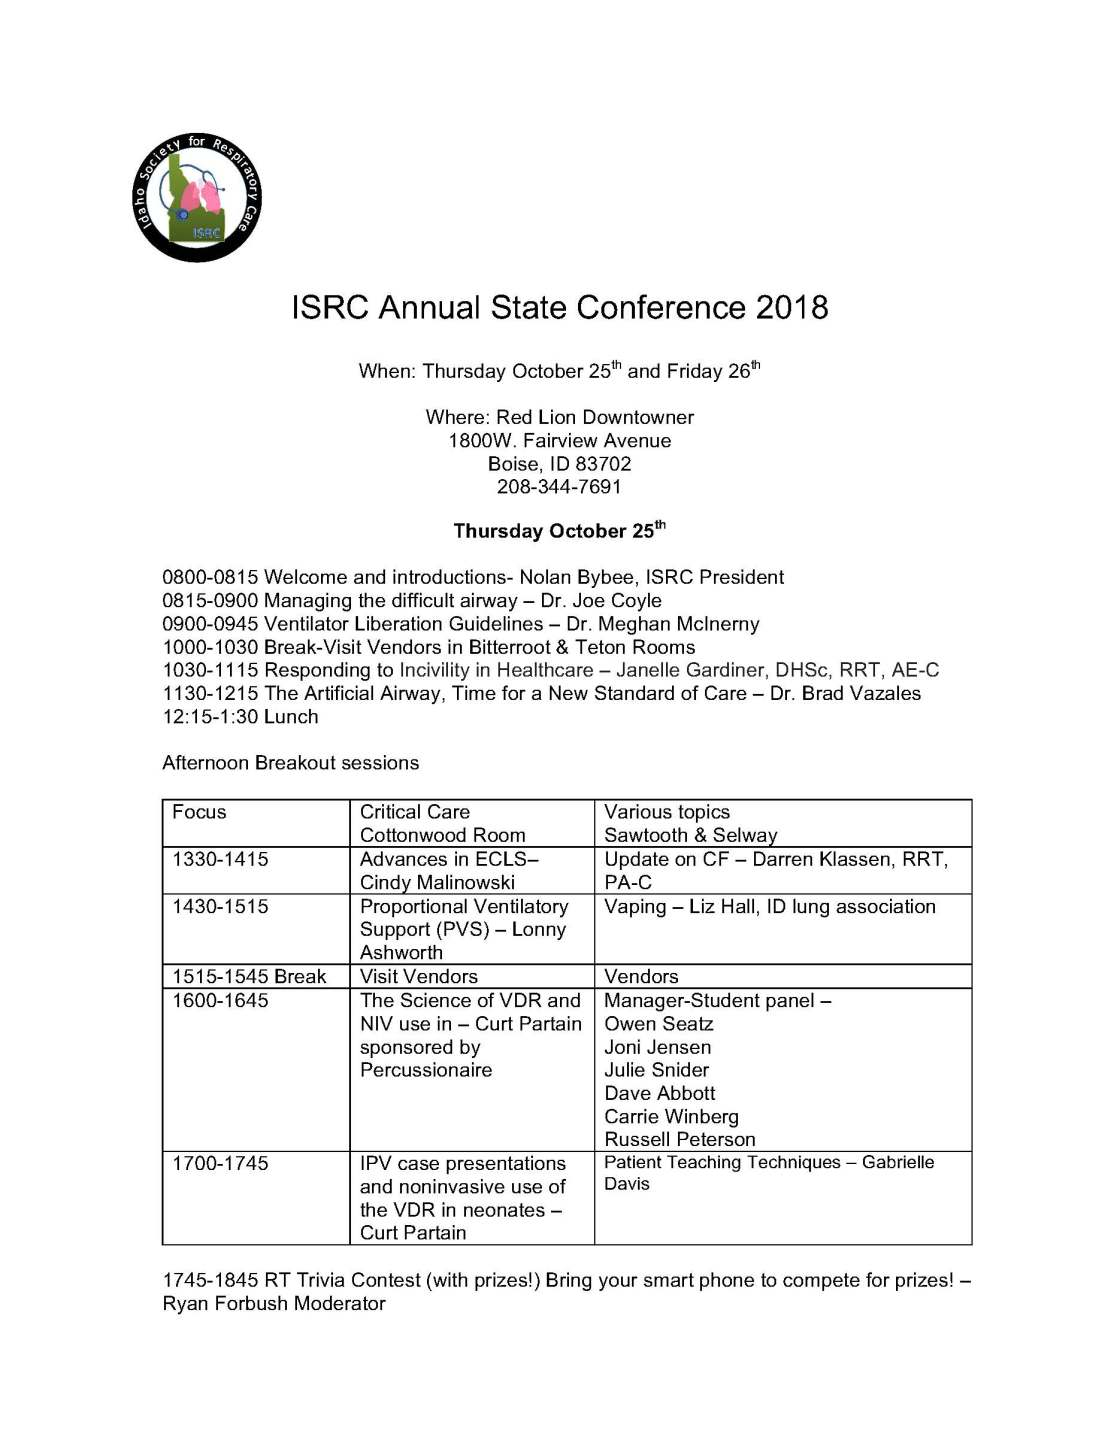 ISRC Annual State Conference 2018_Page_1